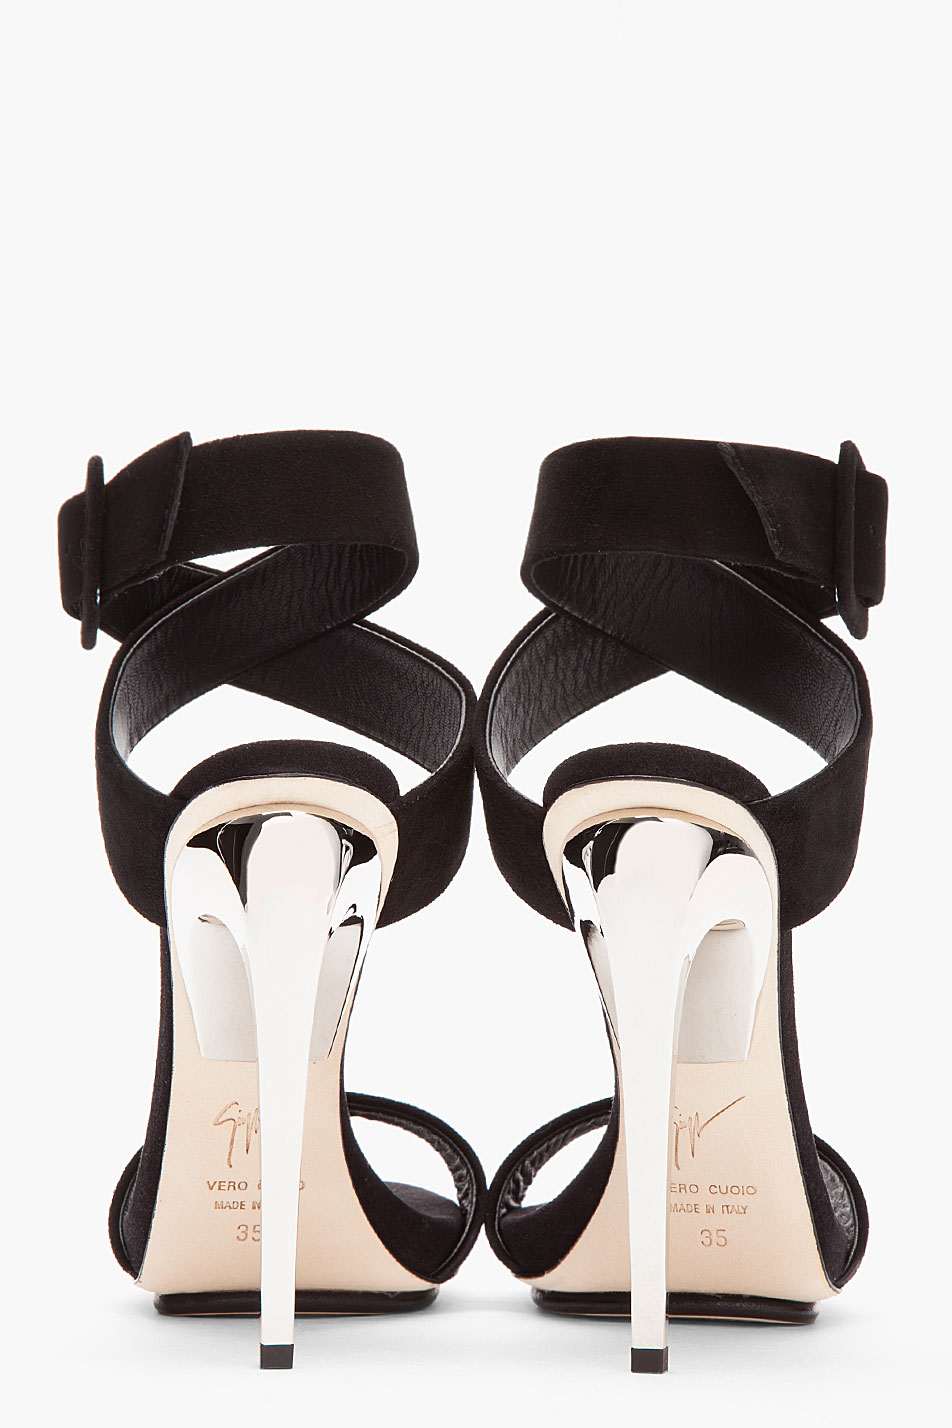 f03068e443f45 Giuseppe Zanotti Black Suede and Silver Alien 115 Heels in Black - Lyst